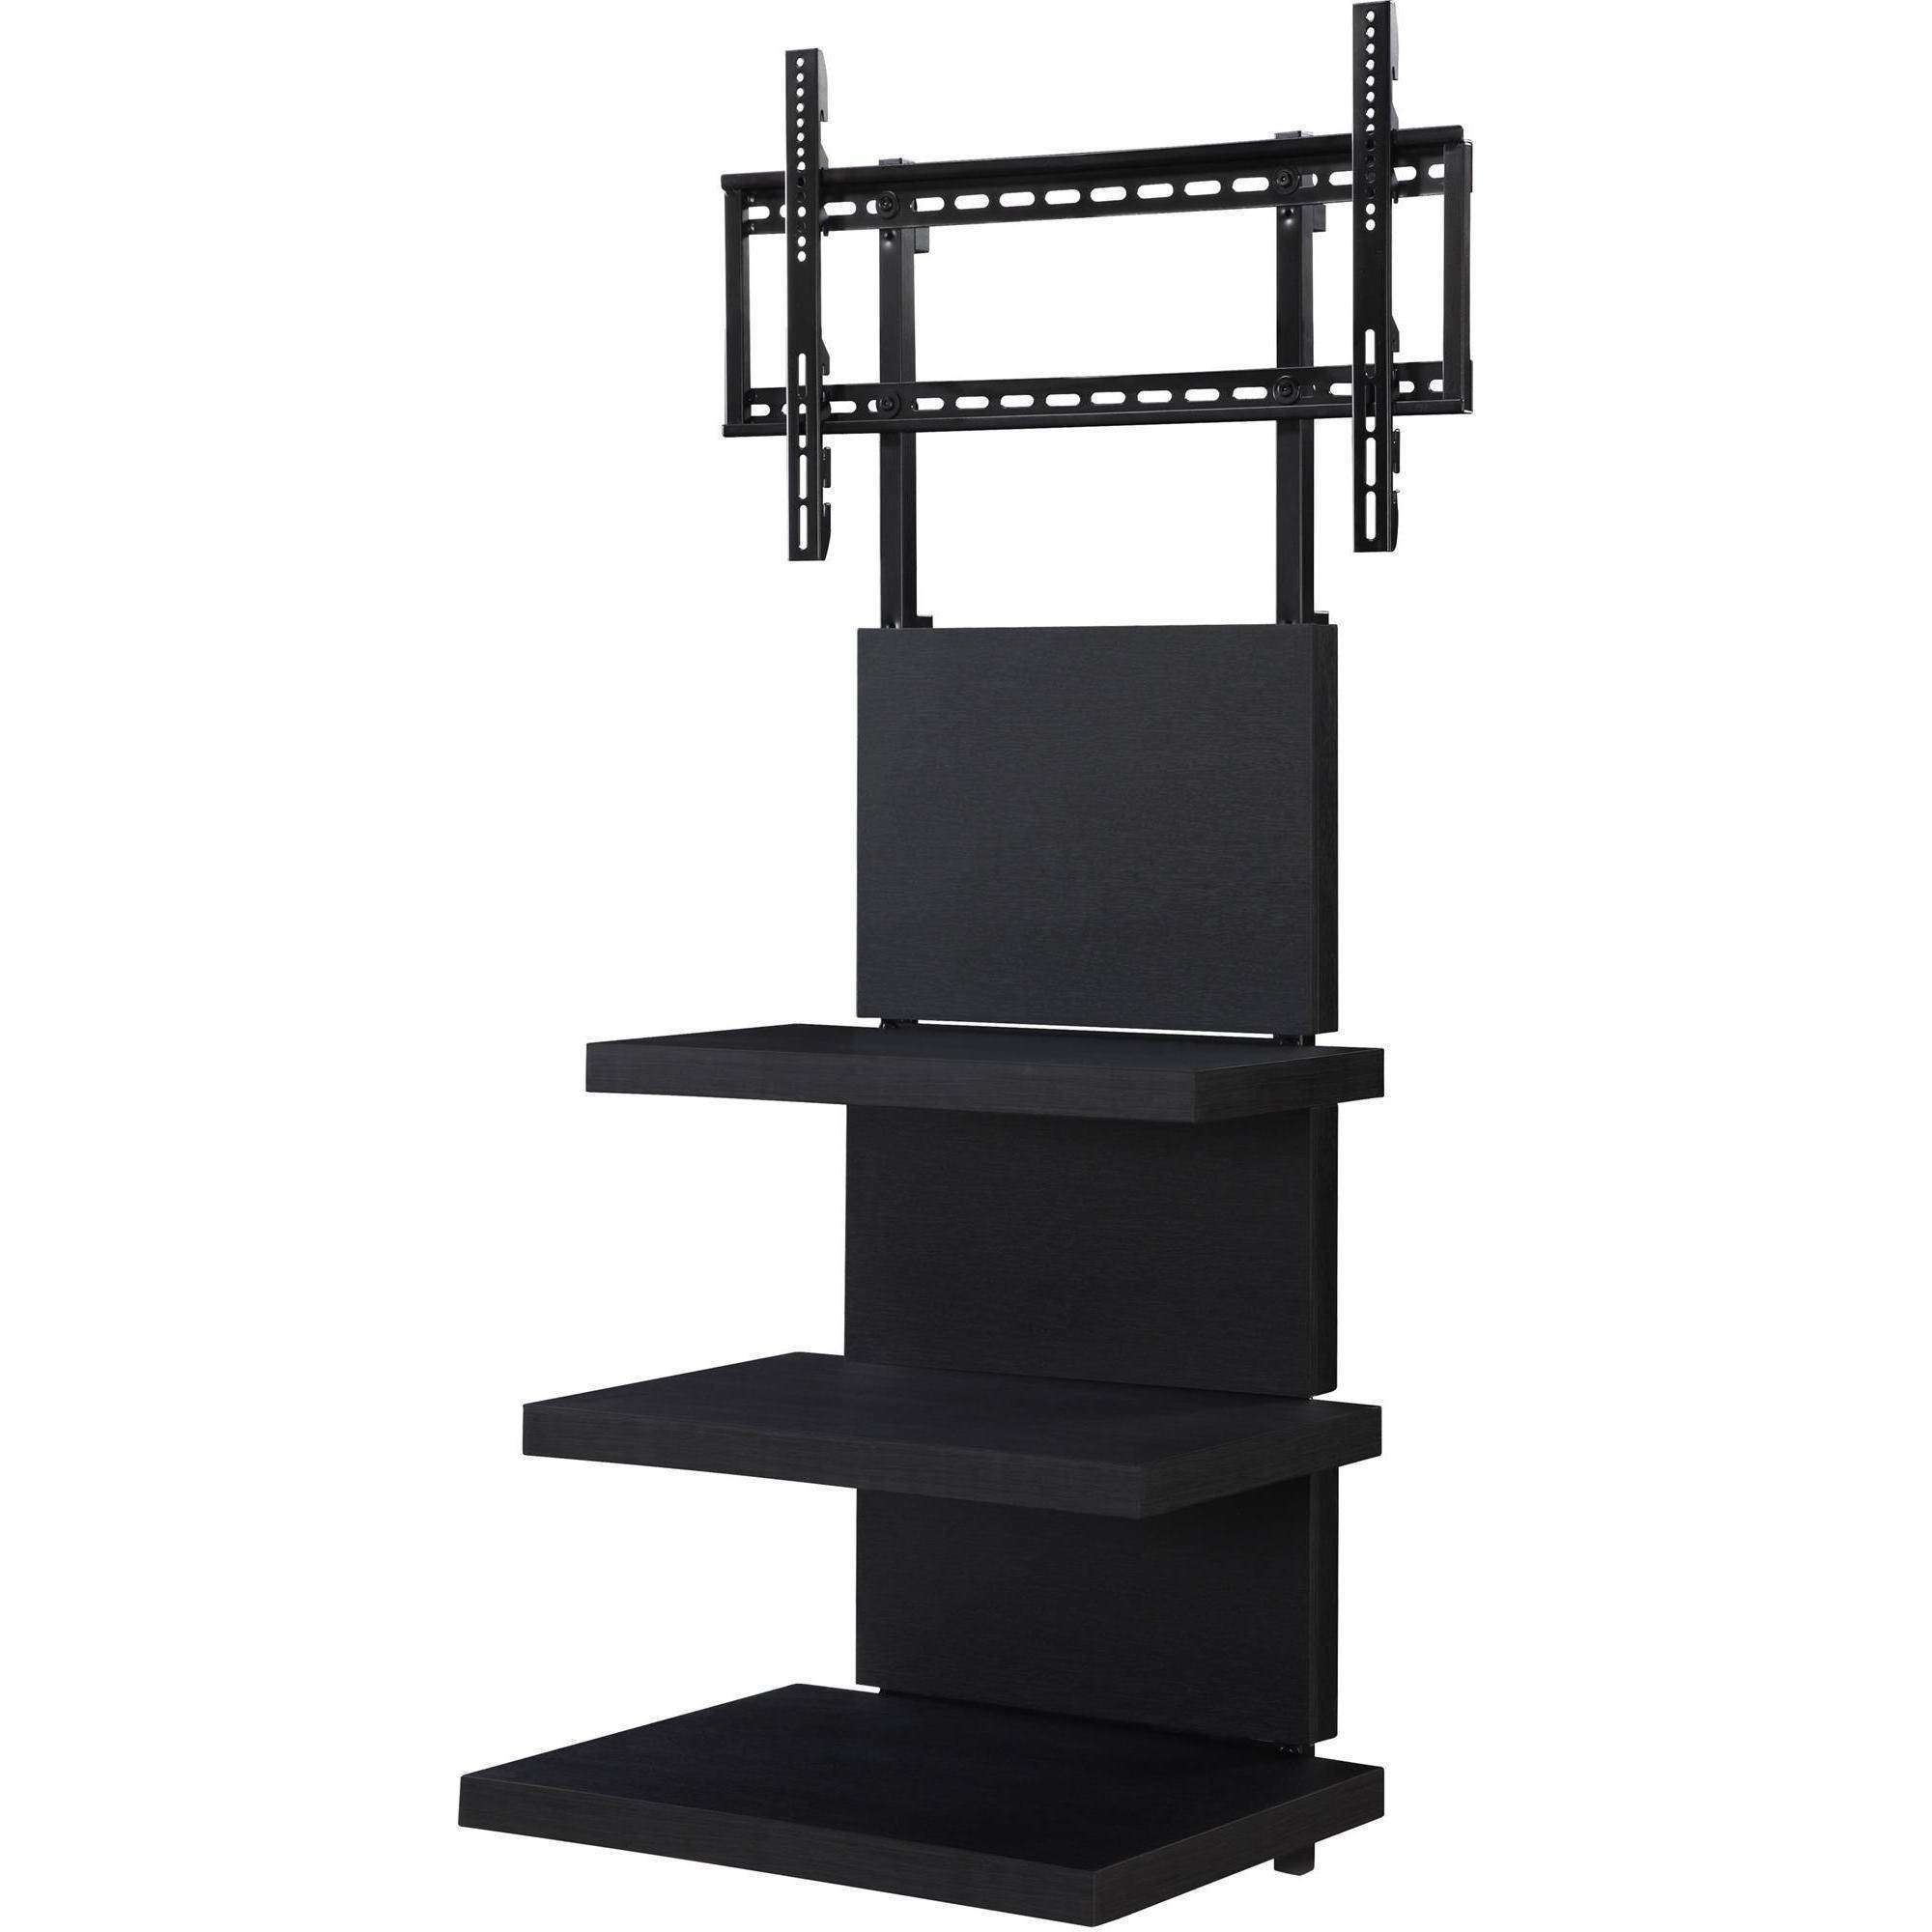 Ameriwood Home Elevation Altramount Tv Stand For Tvs Up To 60 Regarding Elevated Tv Stands (View 1 of 15)